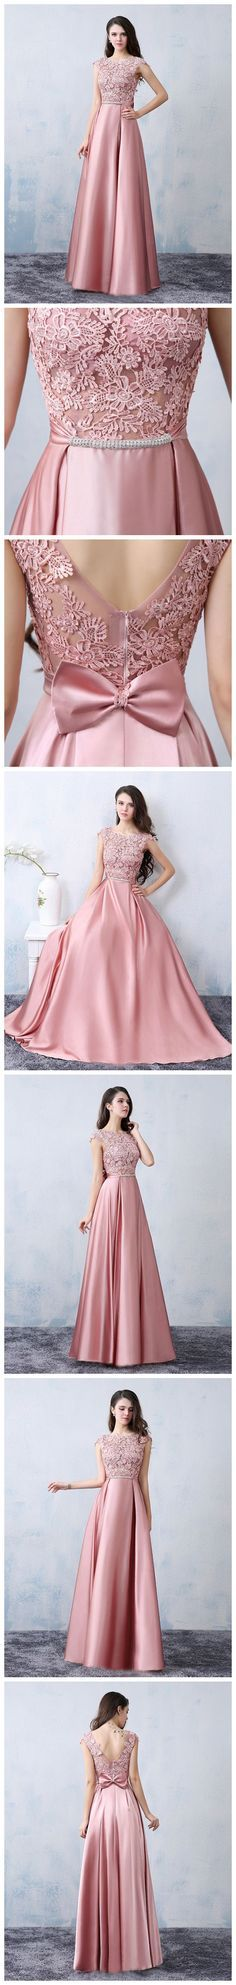 Chic A-line Scoop Pink Satin Applique Modest Prom Dress Evening Dress Trendy Dresses, Modest Dresses, Prom Dresses, Formal Dresses, Modest Fashion, Fashion Dresses, Indian Gowns, Mode Hijab, Classy Dress